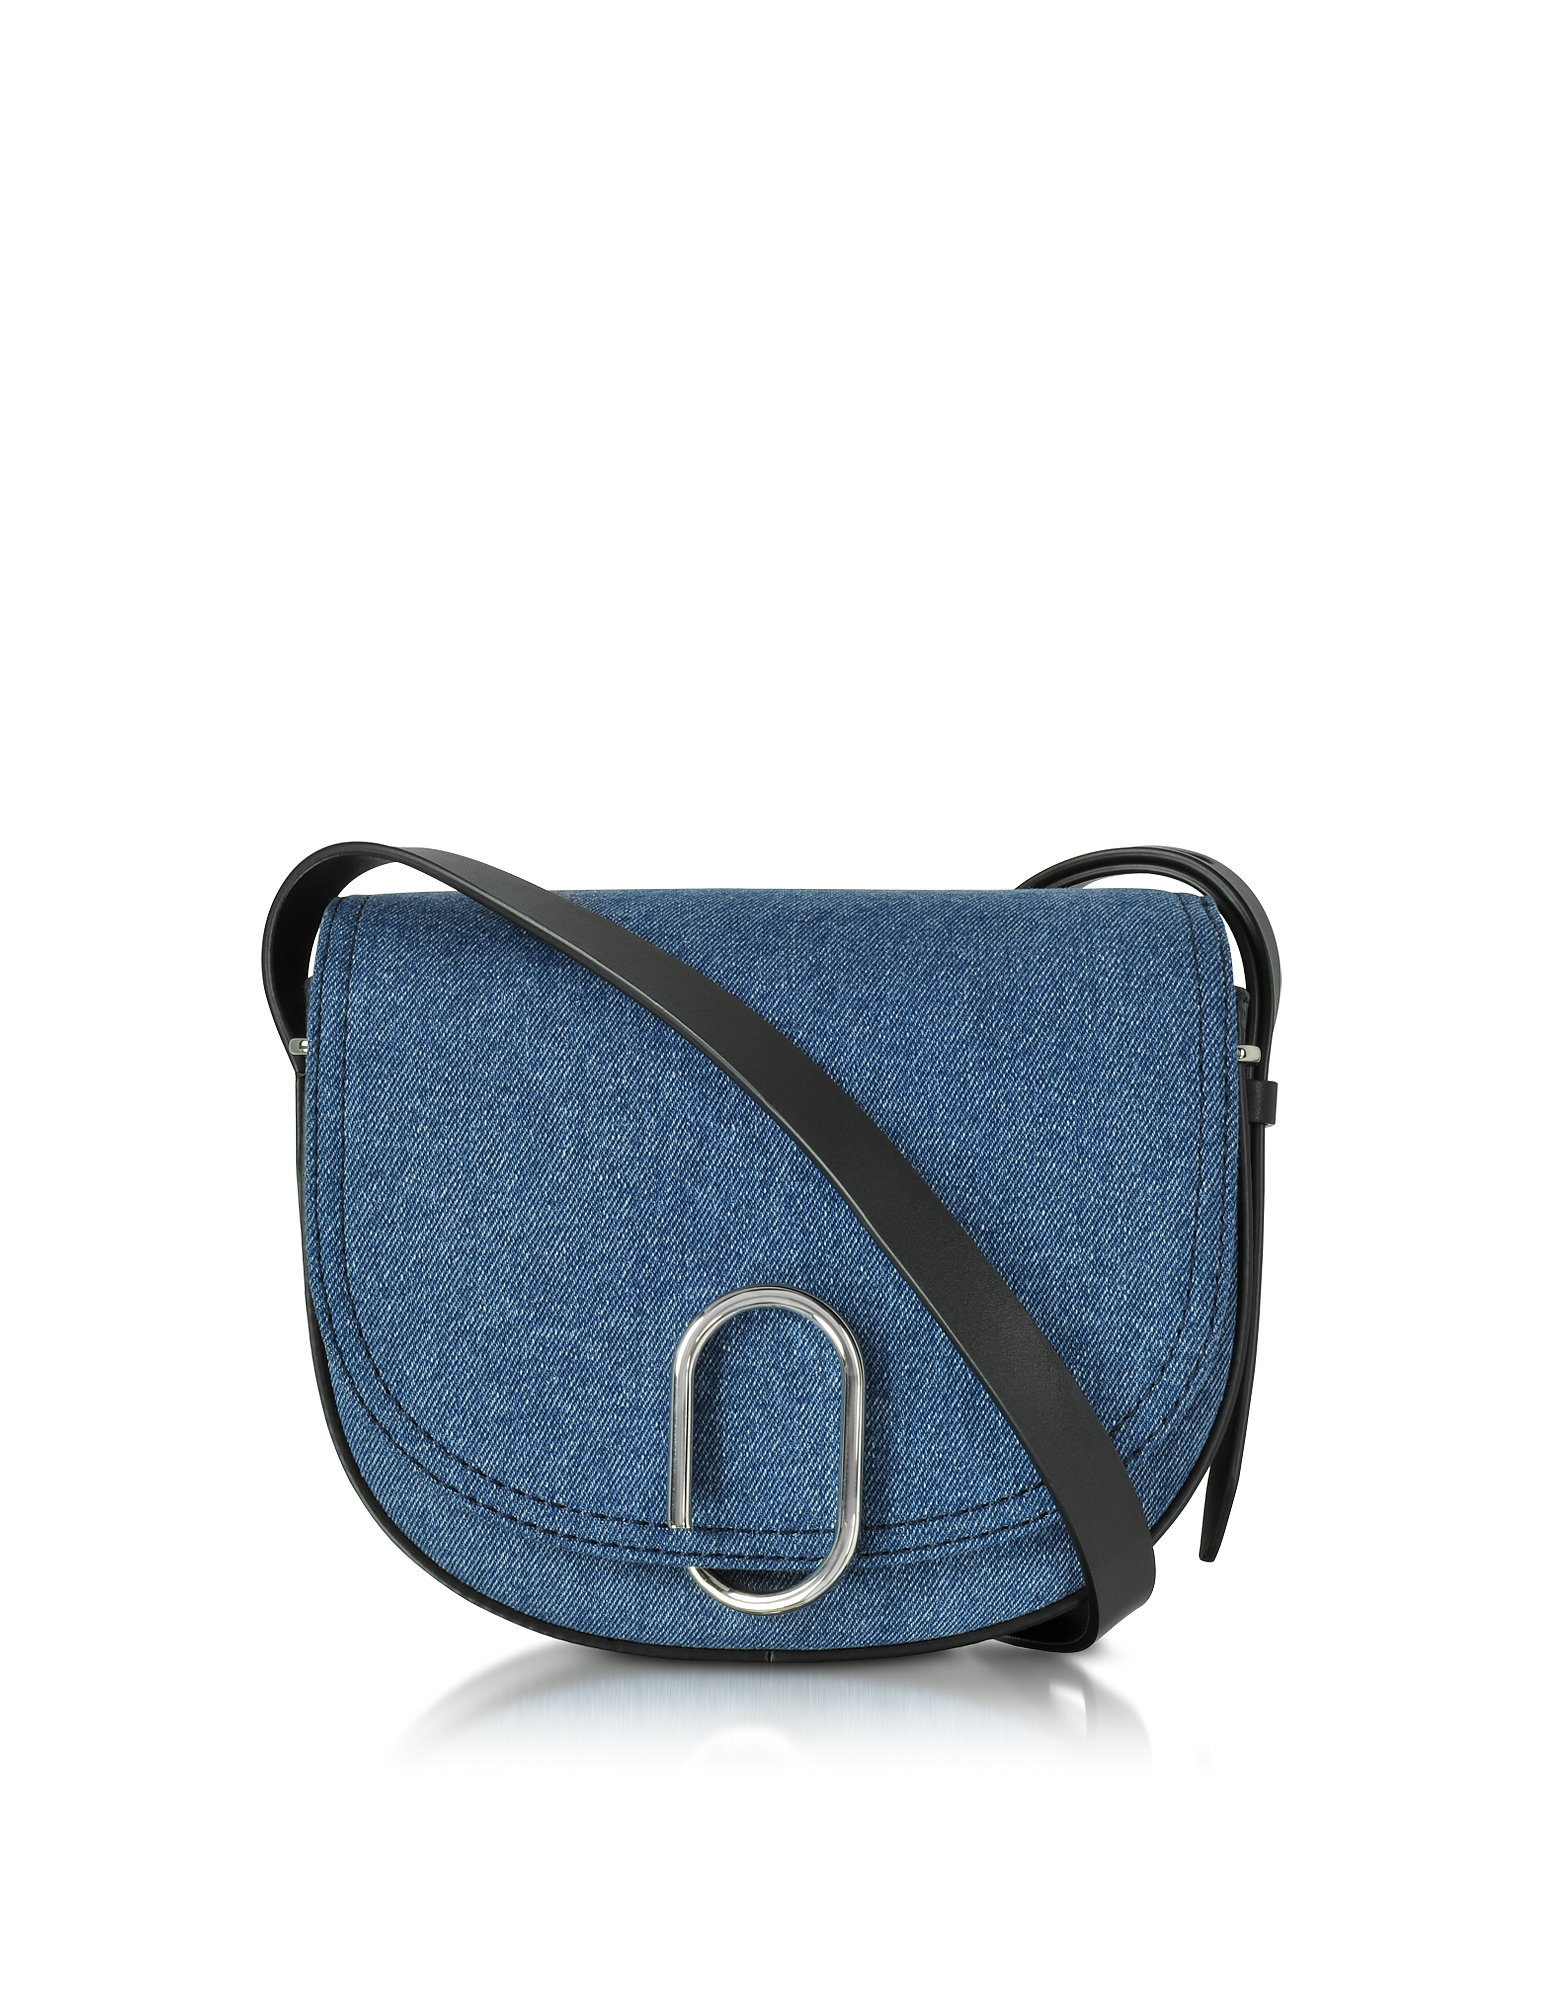 3.1 Phillip Lim Handbags, Alix Washed Indigo and Black Saddle Crossbody